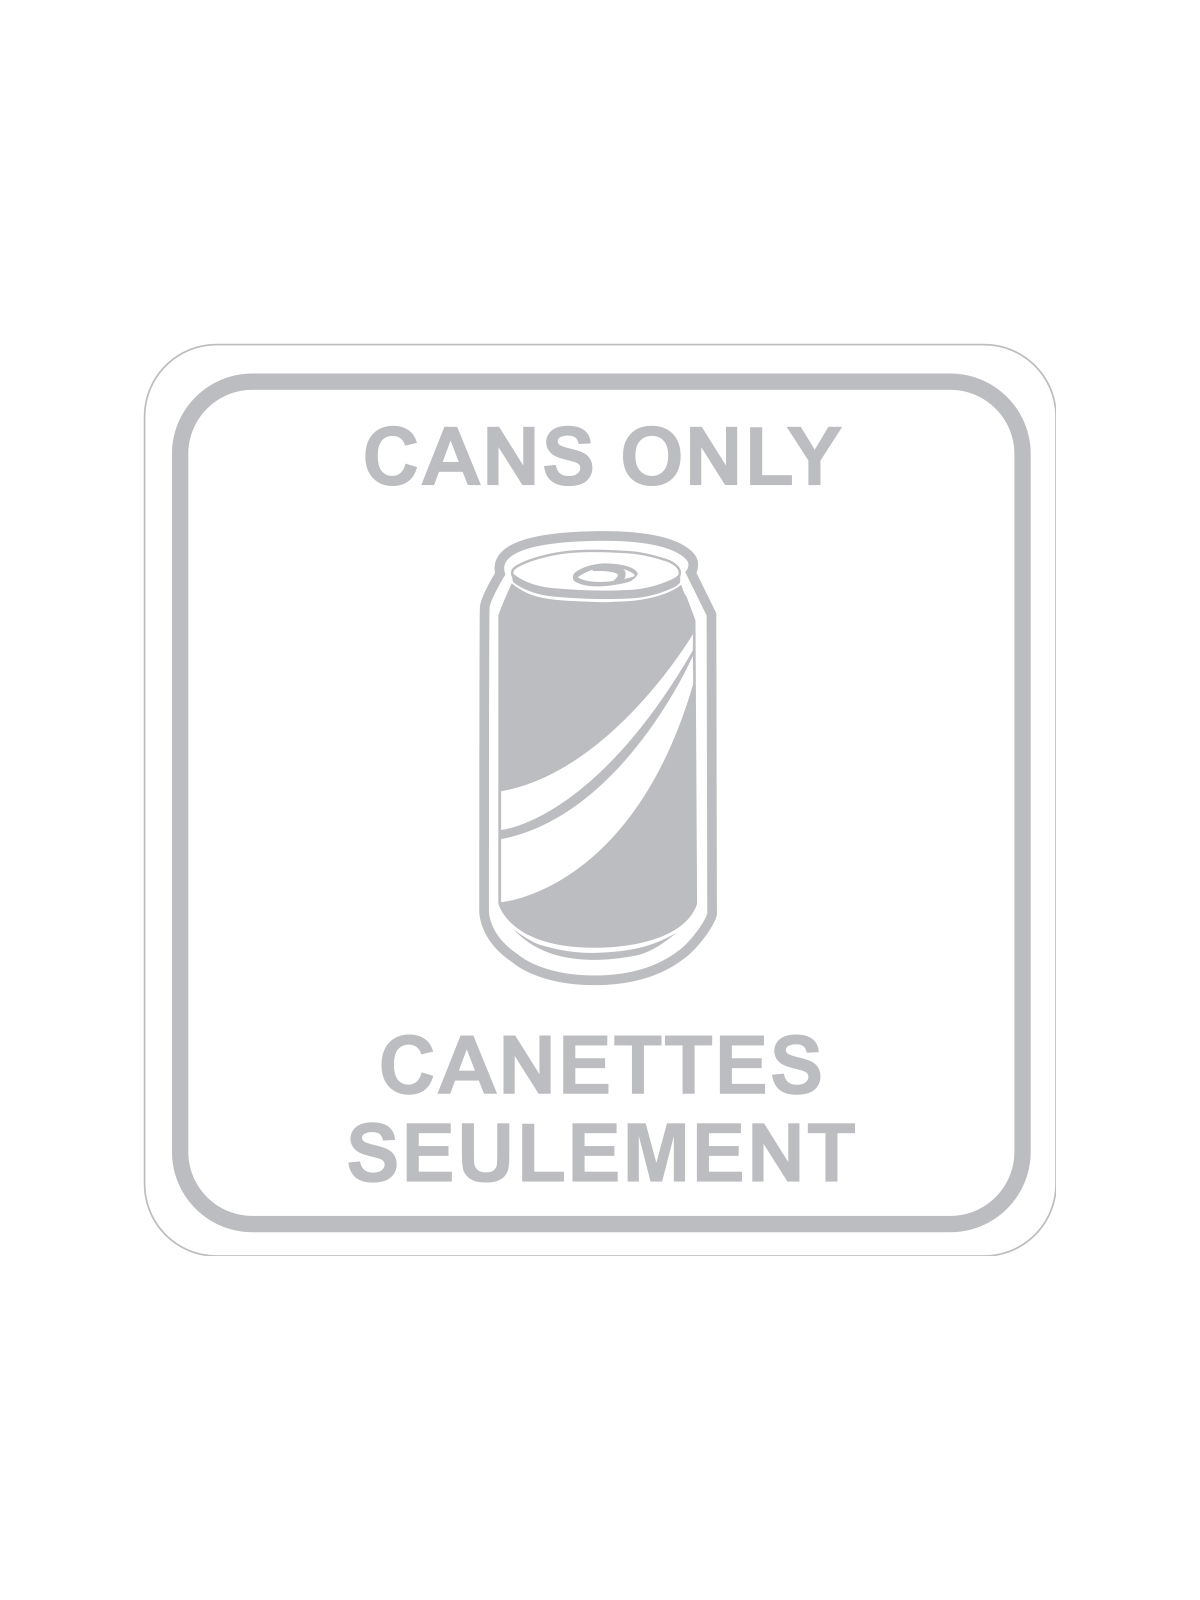 SQUARE LABEL CANS ONLY - ENG/FRE